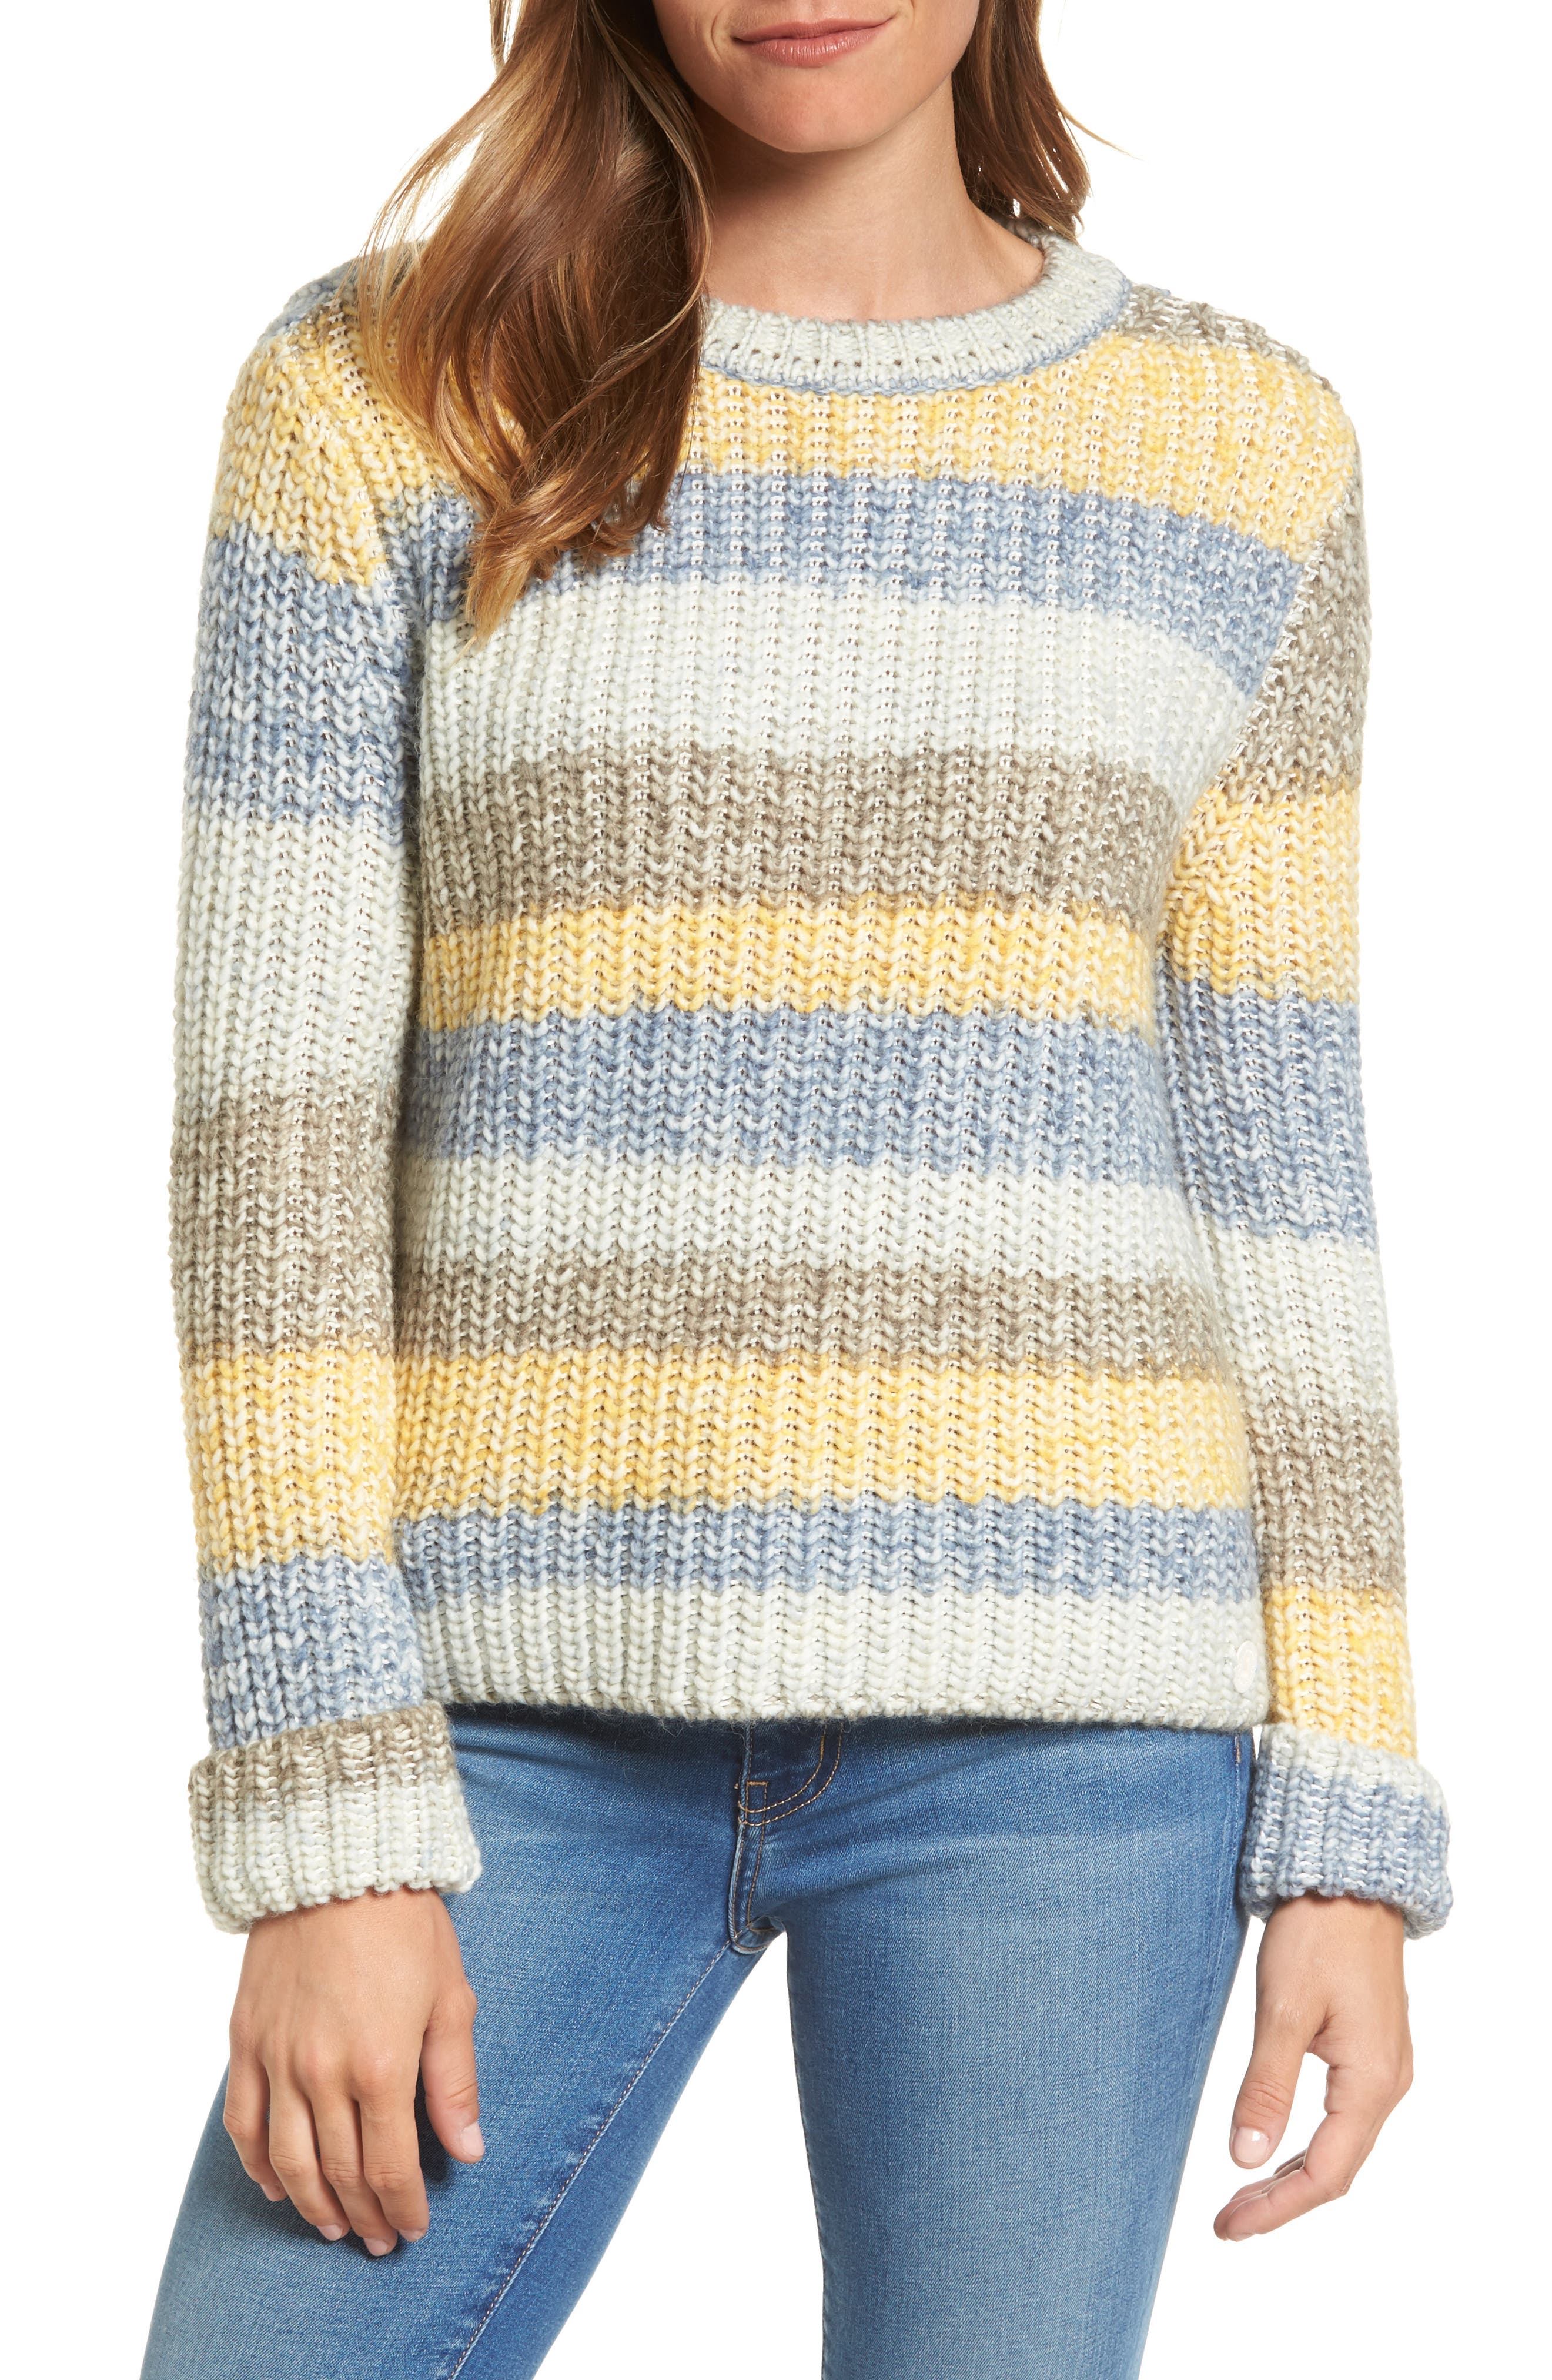 Barbour Hive Knit Fisherman Sweater